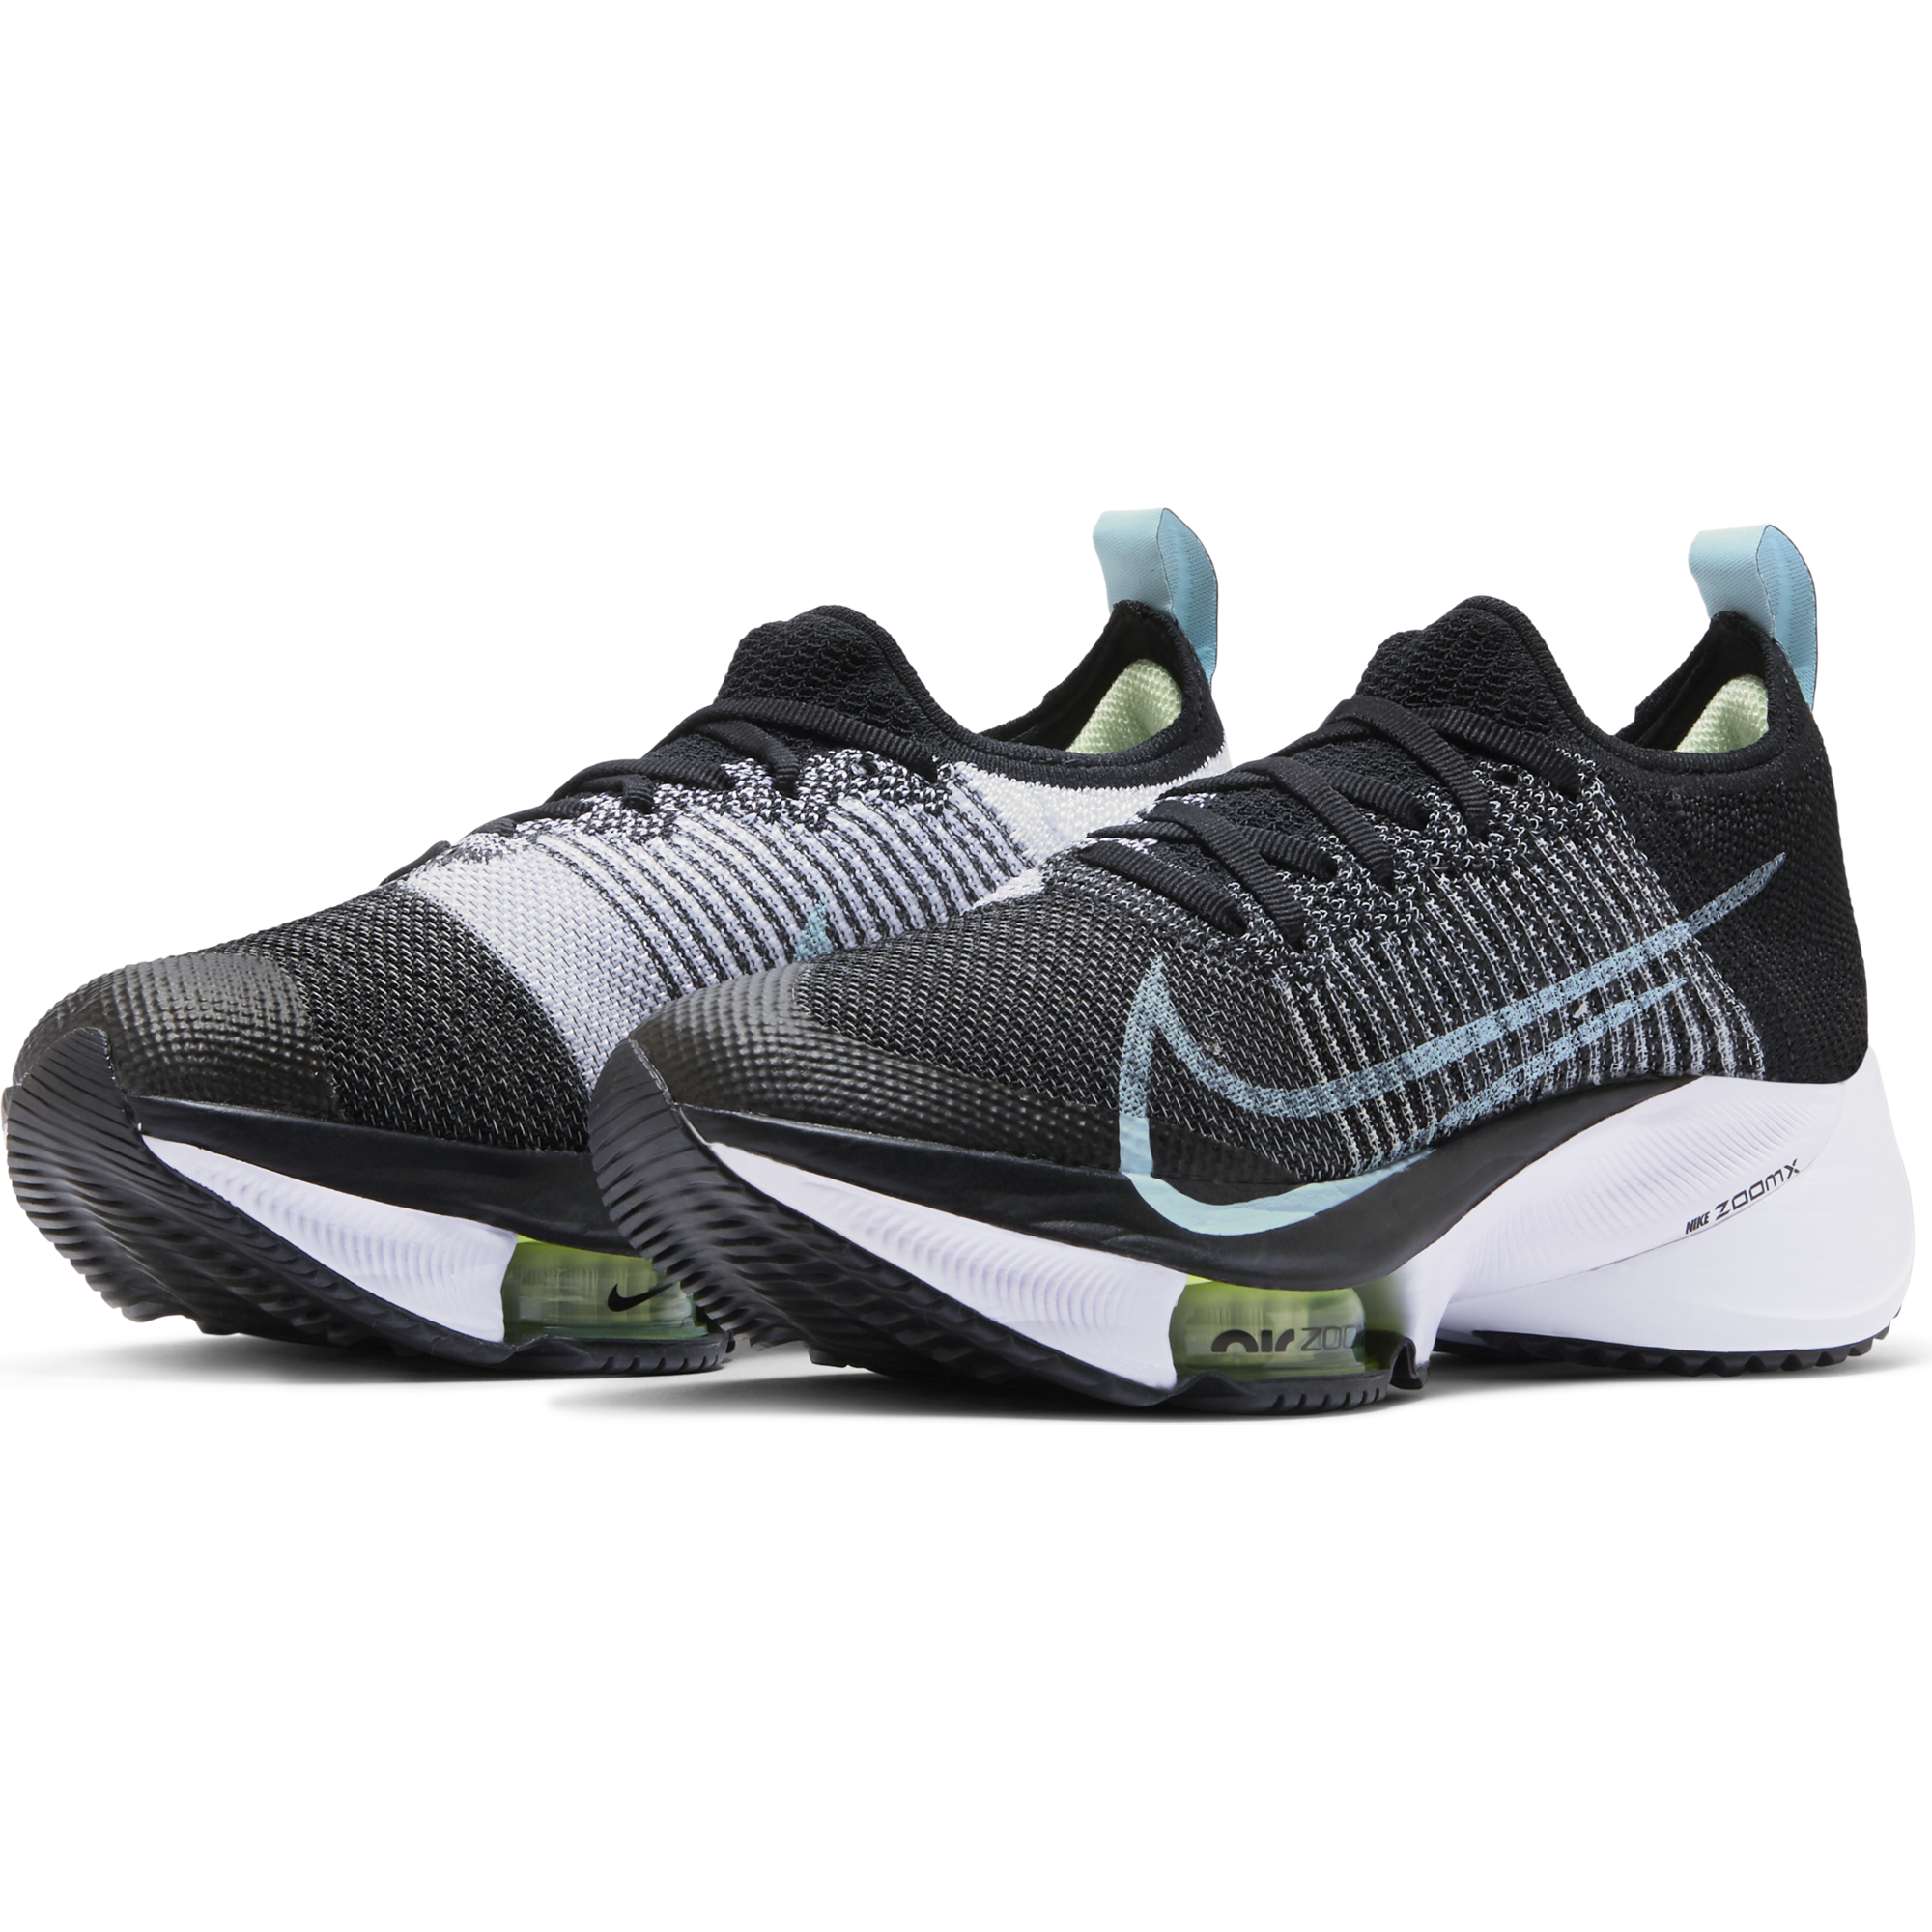 Women's Air Zoom Tempo Next% (001 - Black/Glacier Ice-White-Barely Volt)